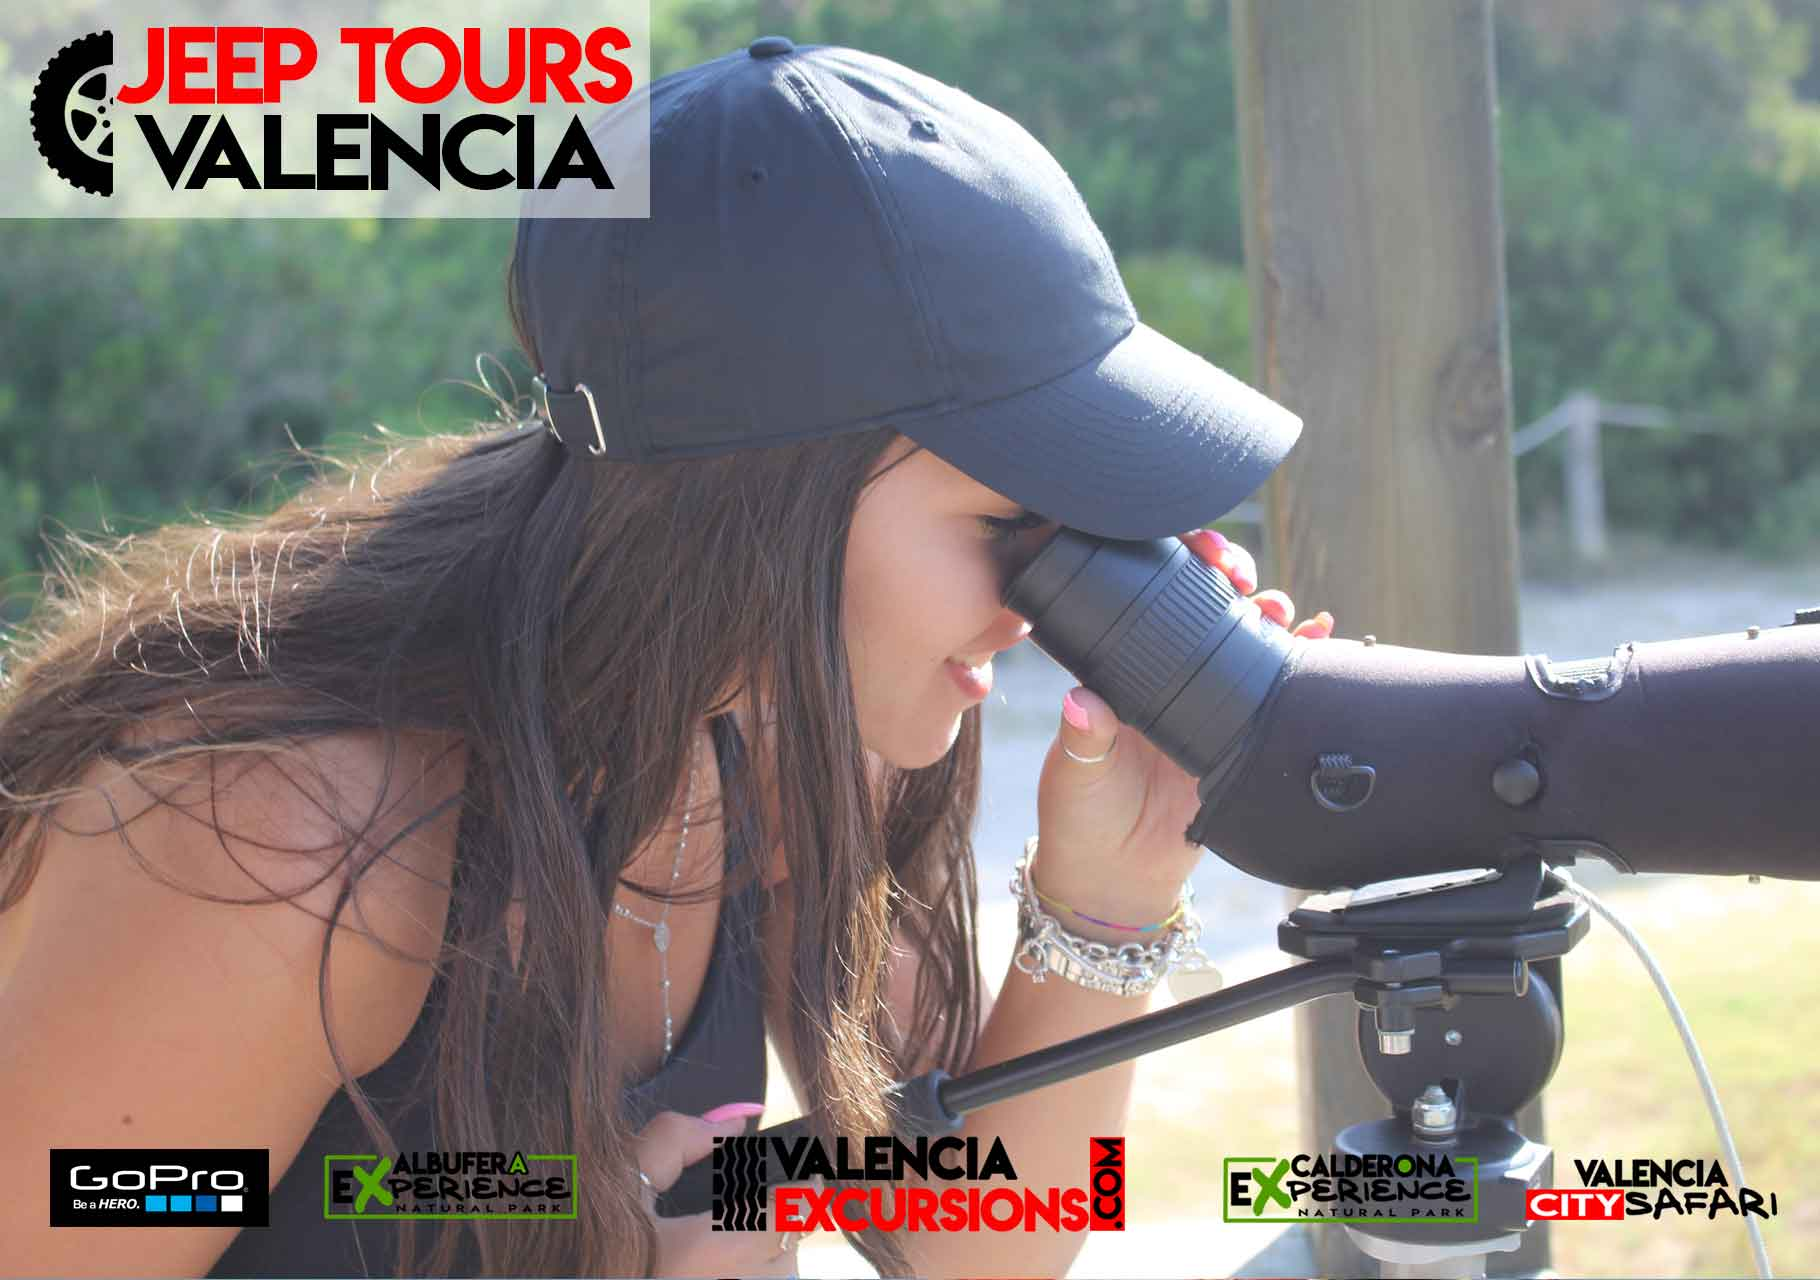 Albufera Birdwatching in Albufera National Park during Albufera EXperience Jeep Tour Valencia